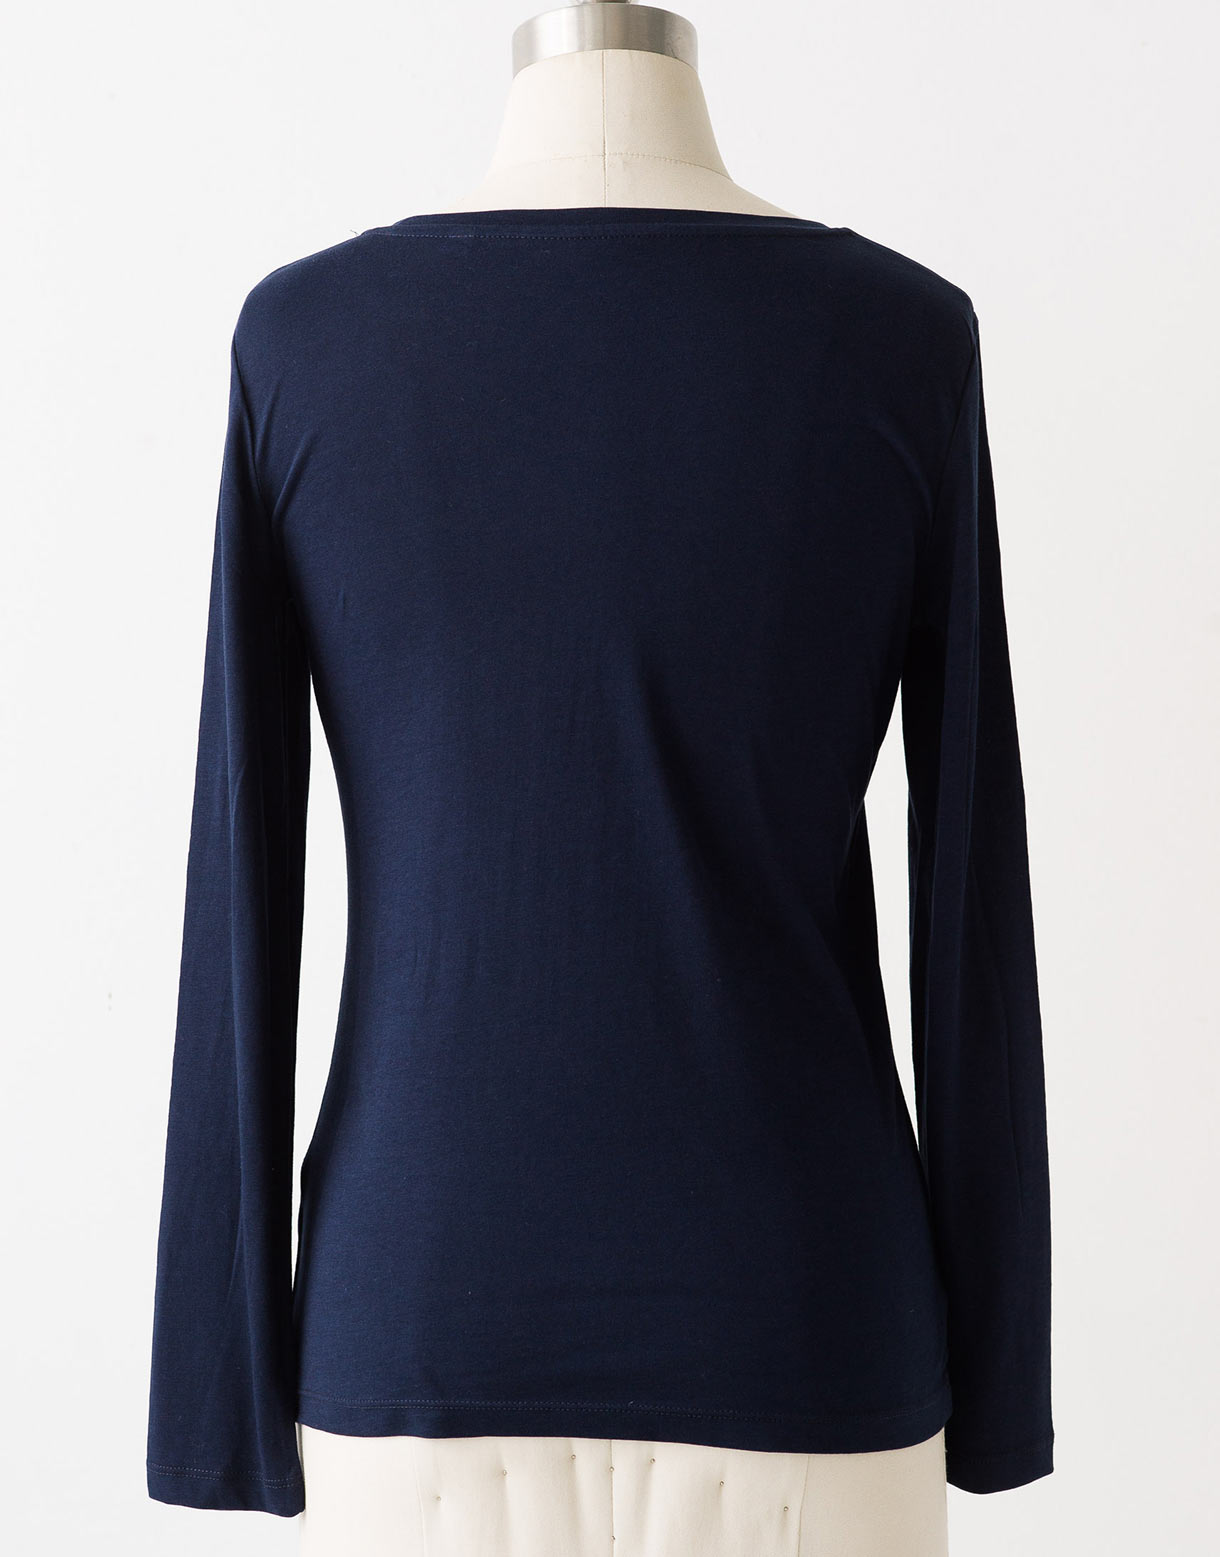 Maris long sleeve tee in French Navy *organic cotton